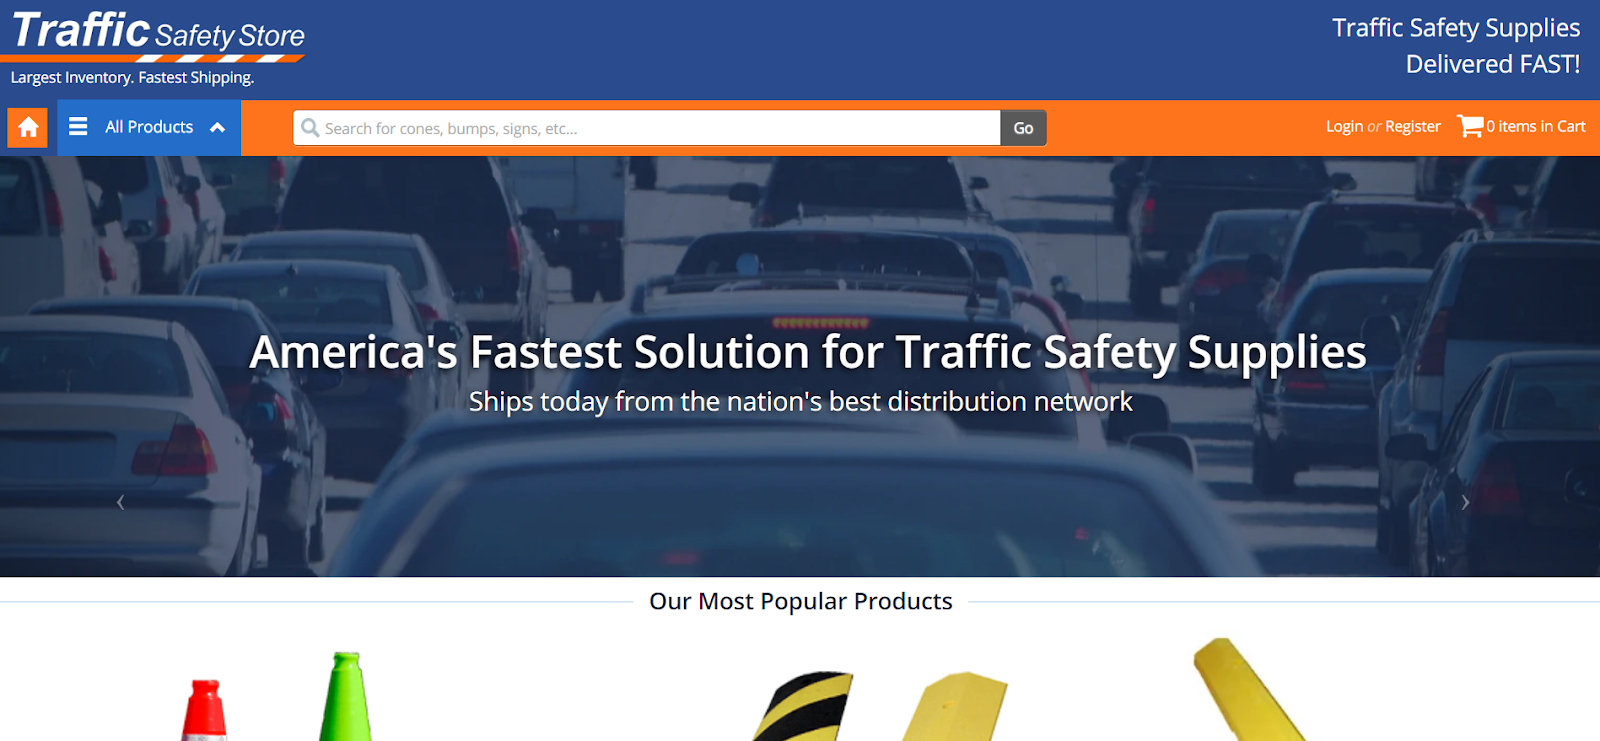 b2b ecommerce site for traffic safety equipment